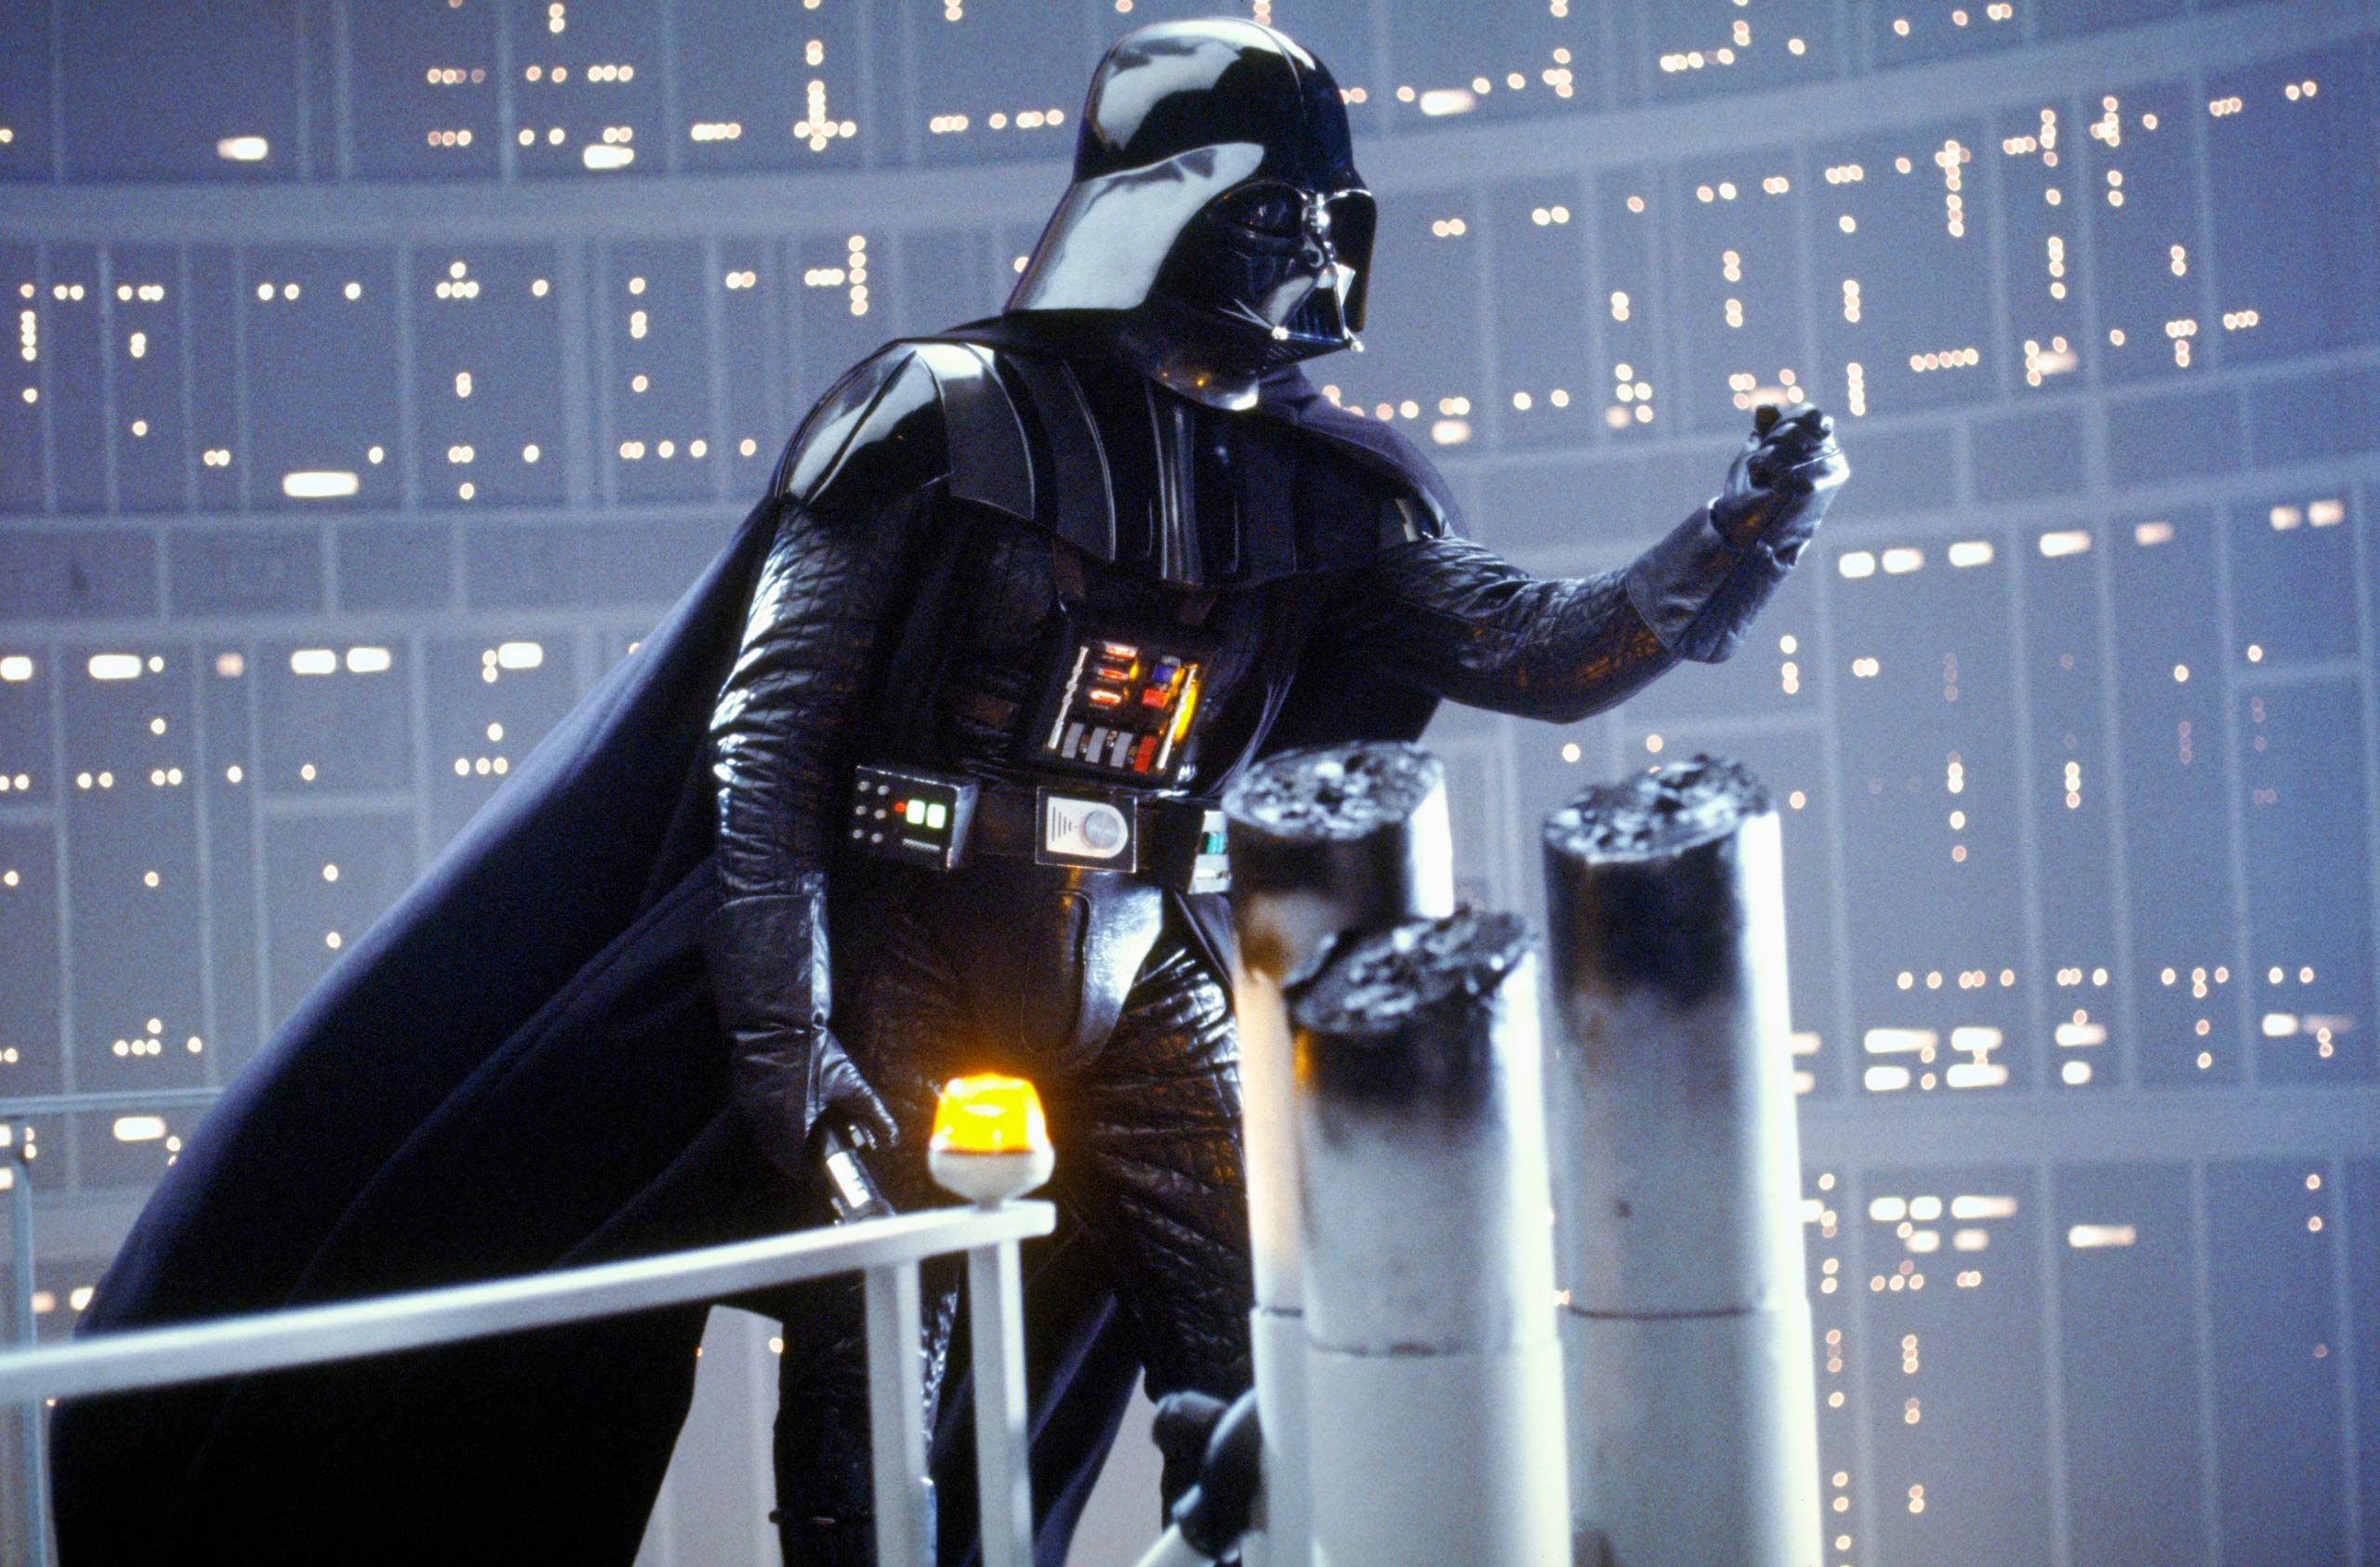 <strong><i>Star Wars: Episode V - The Empire Strikes Back</i></strong> In the second installment of the <i>Star Wars</i> franchise, released in 1980, the Galactic Empire, led by Darth Vader, pursues Luke Skywalker and the rest of the Rebel Alliance.